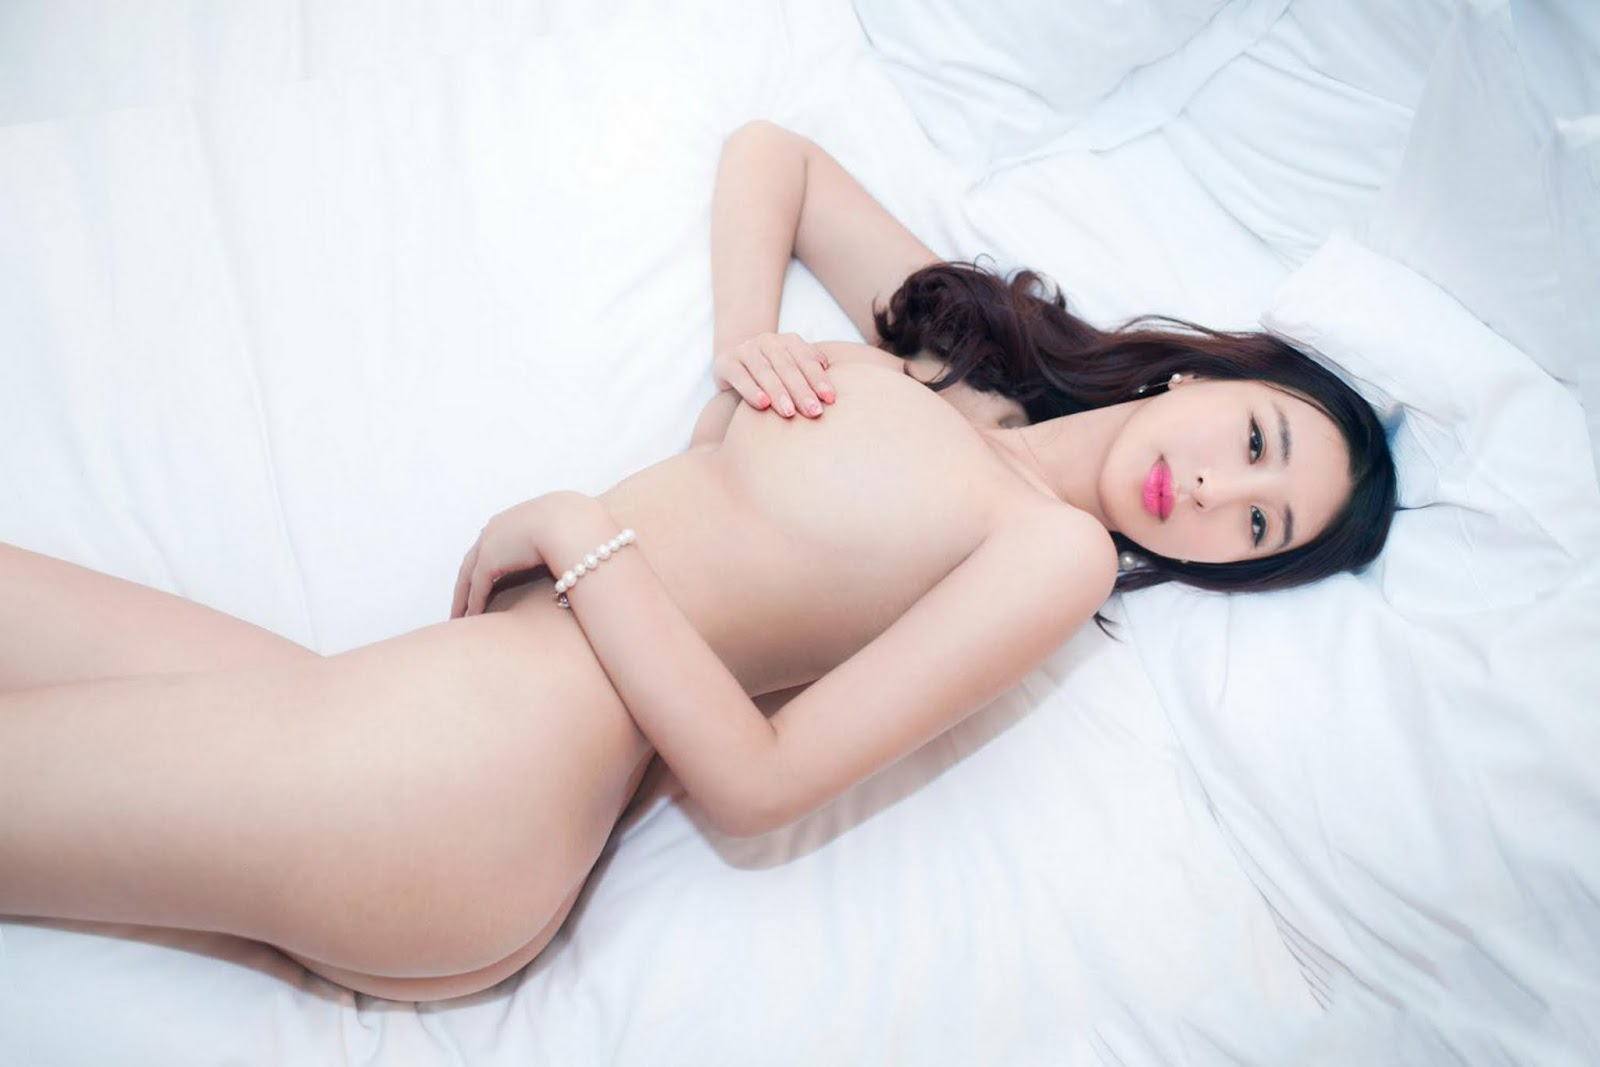 35 - Lake Model Sexy TUIGIRL NO.52 Hot